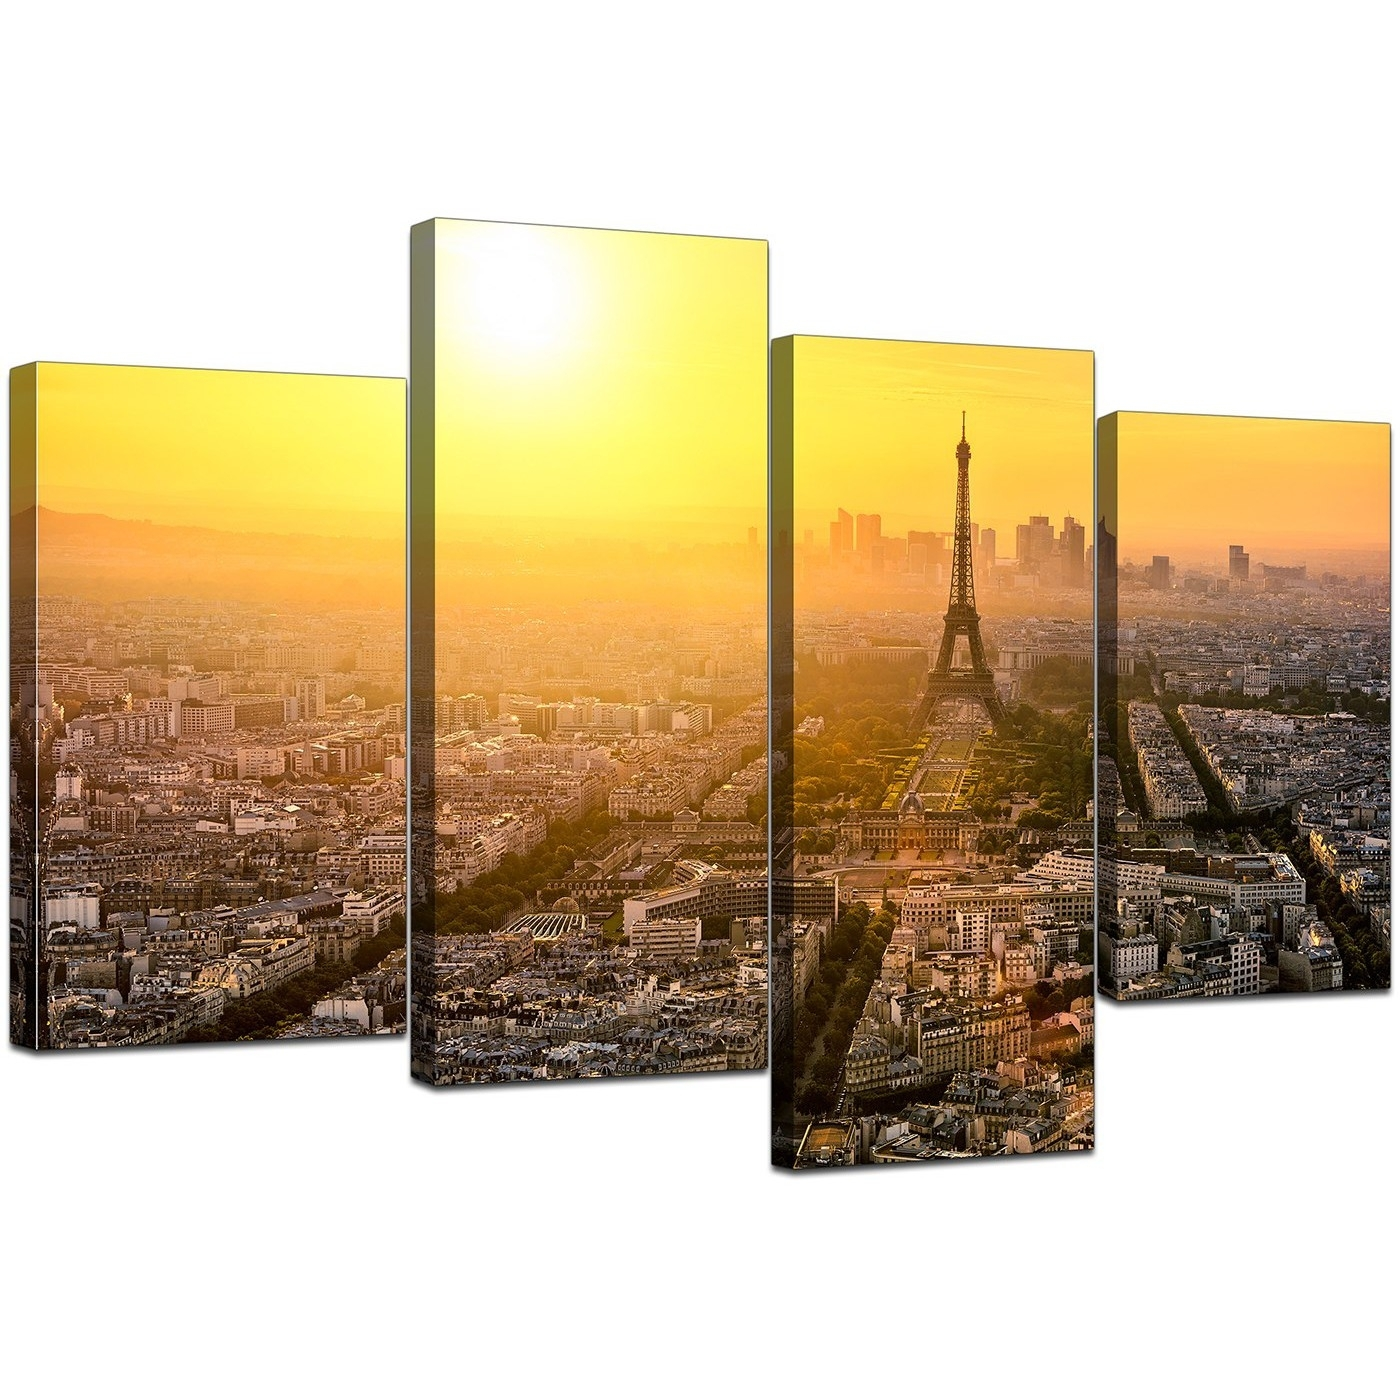 Explore Gallery of Canvas Wall Art Of Paris (Showing 6 of 15 Photos)